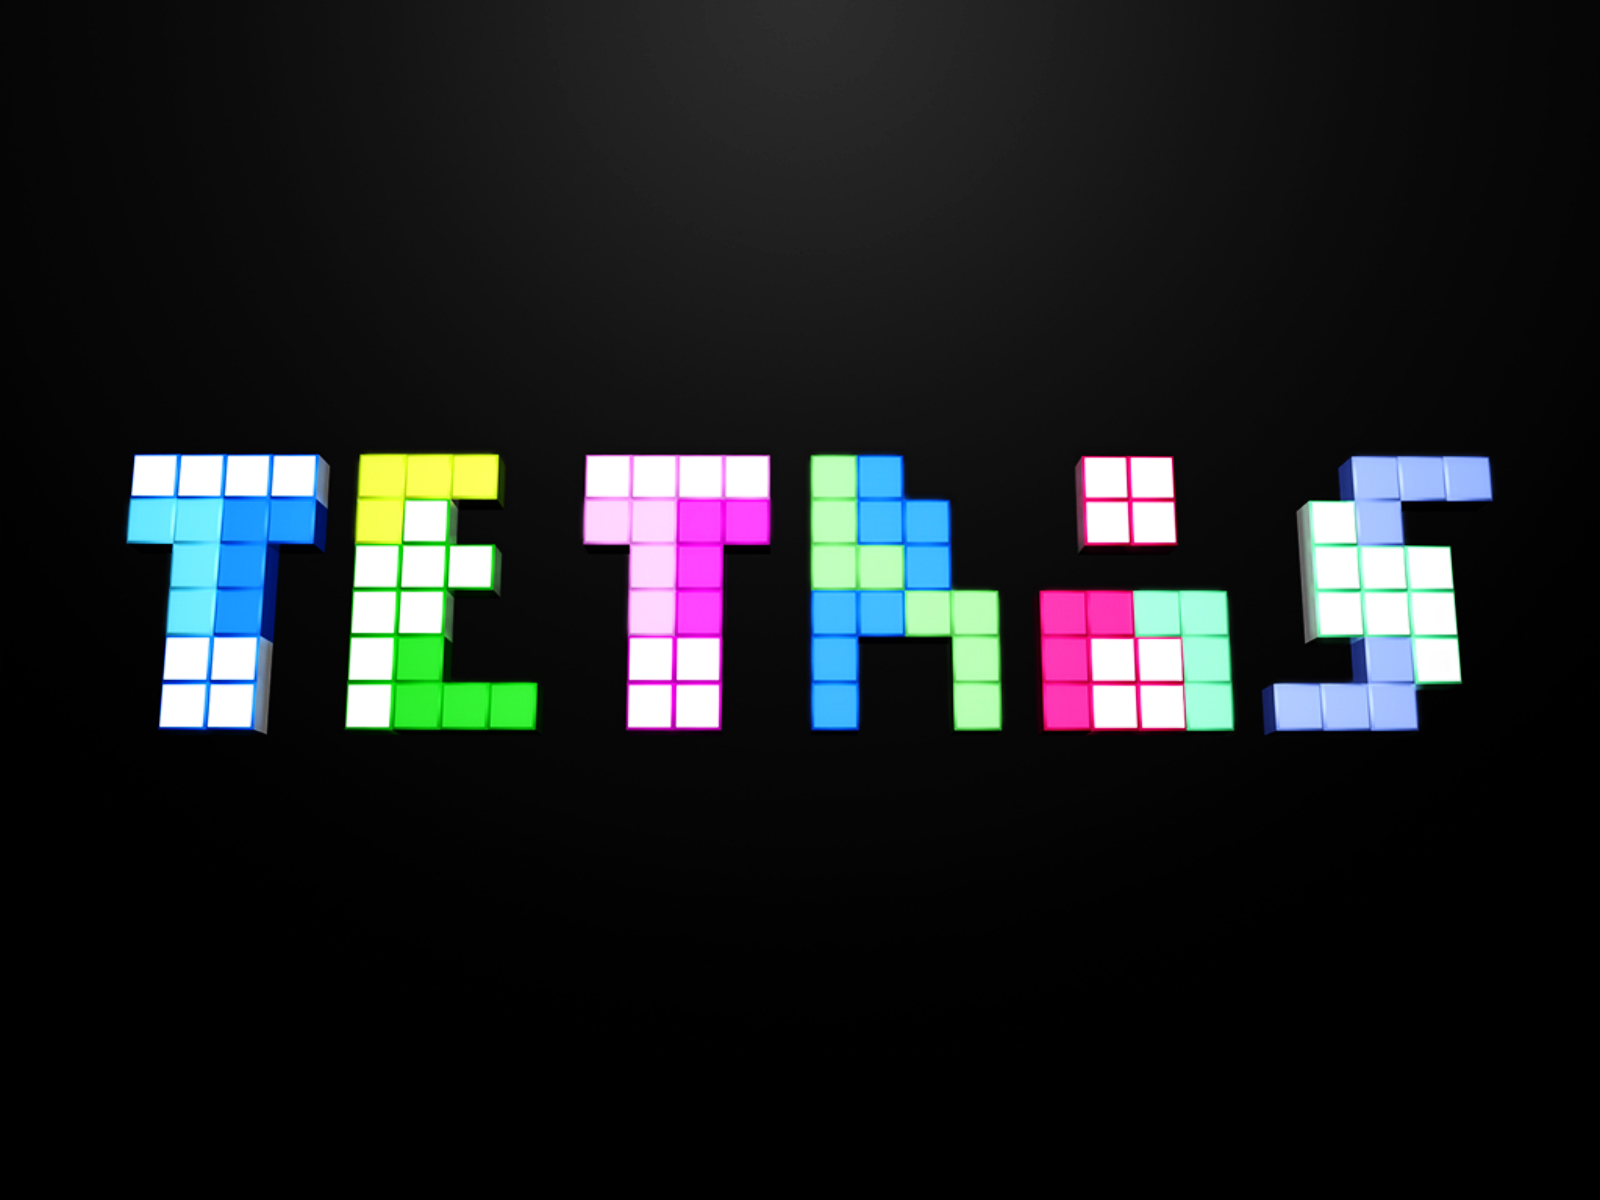 Tetris Colorful Blocks Cubes Hd Wallpapers Desktop